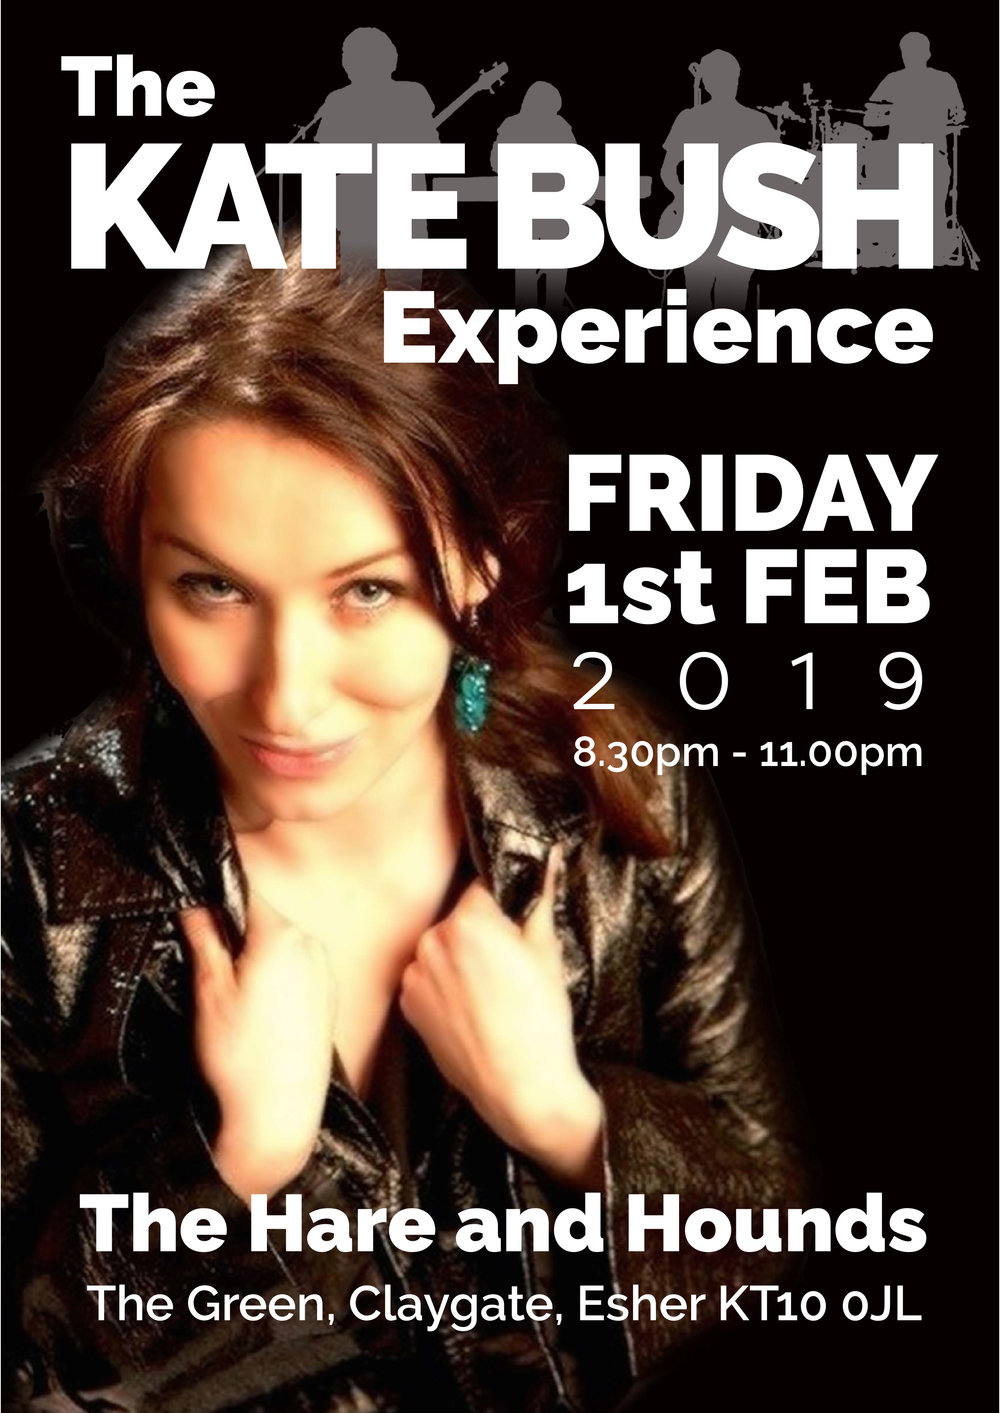 Kate Bush poster hare and hounds 1 FEB.jpg